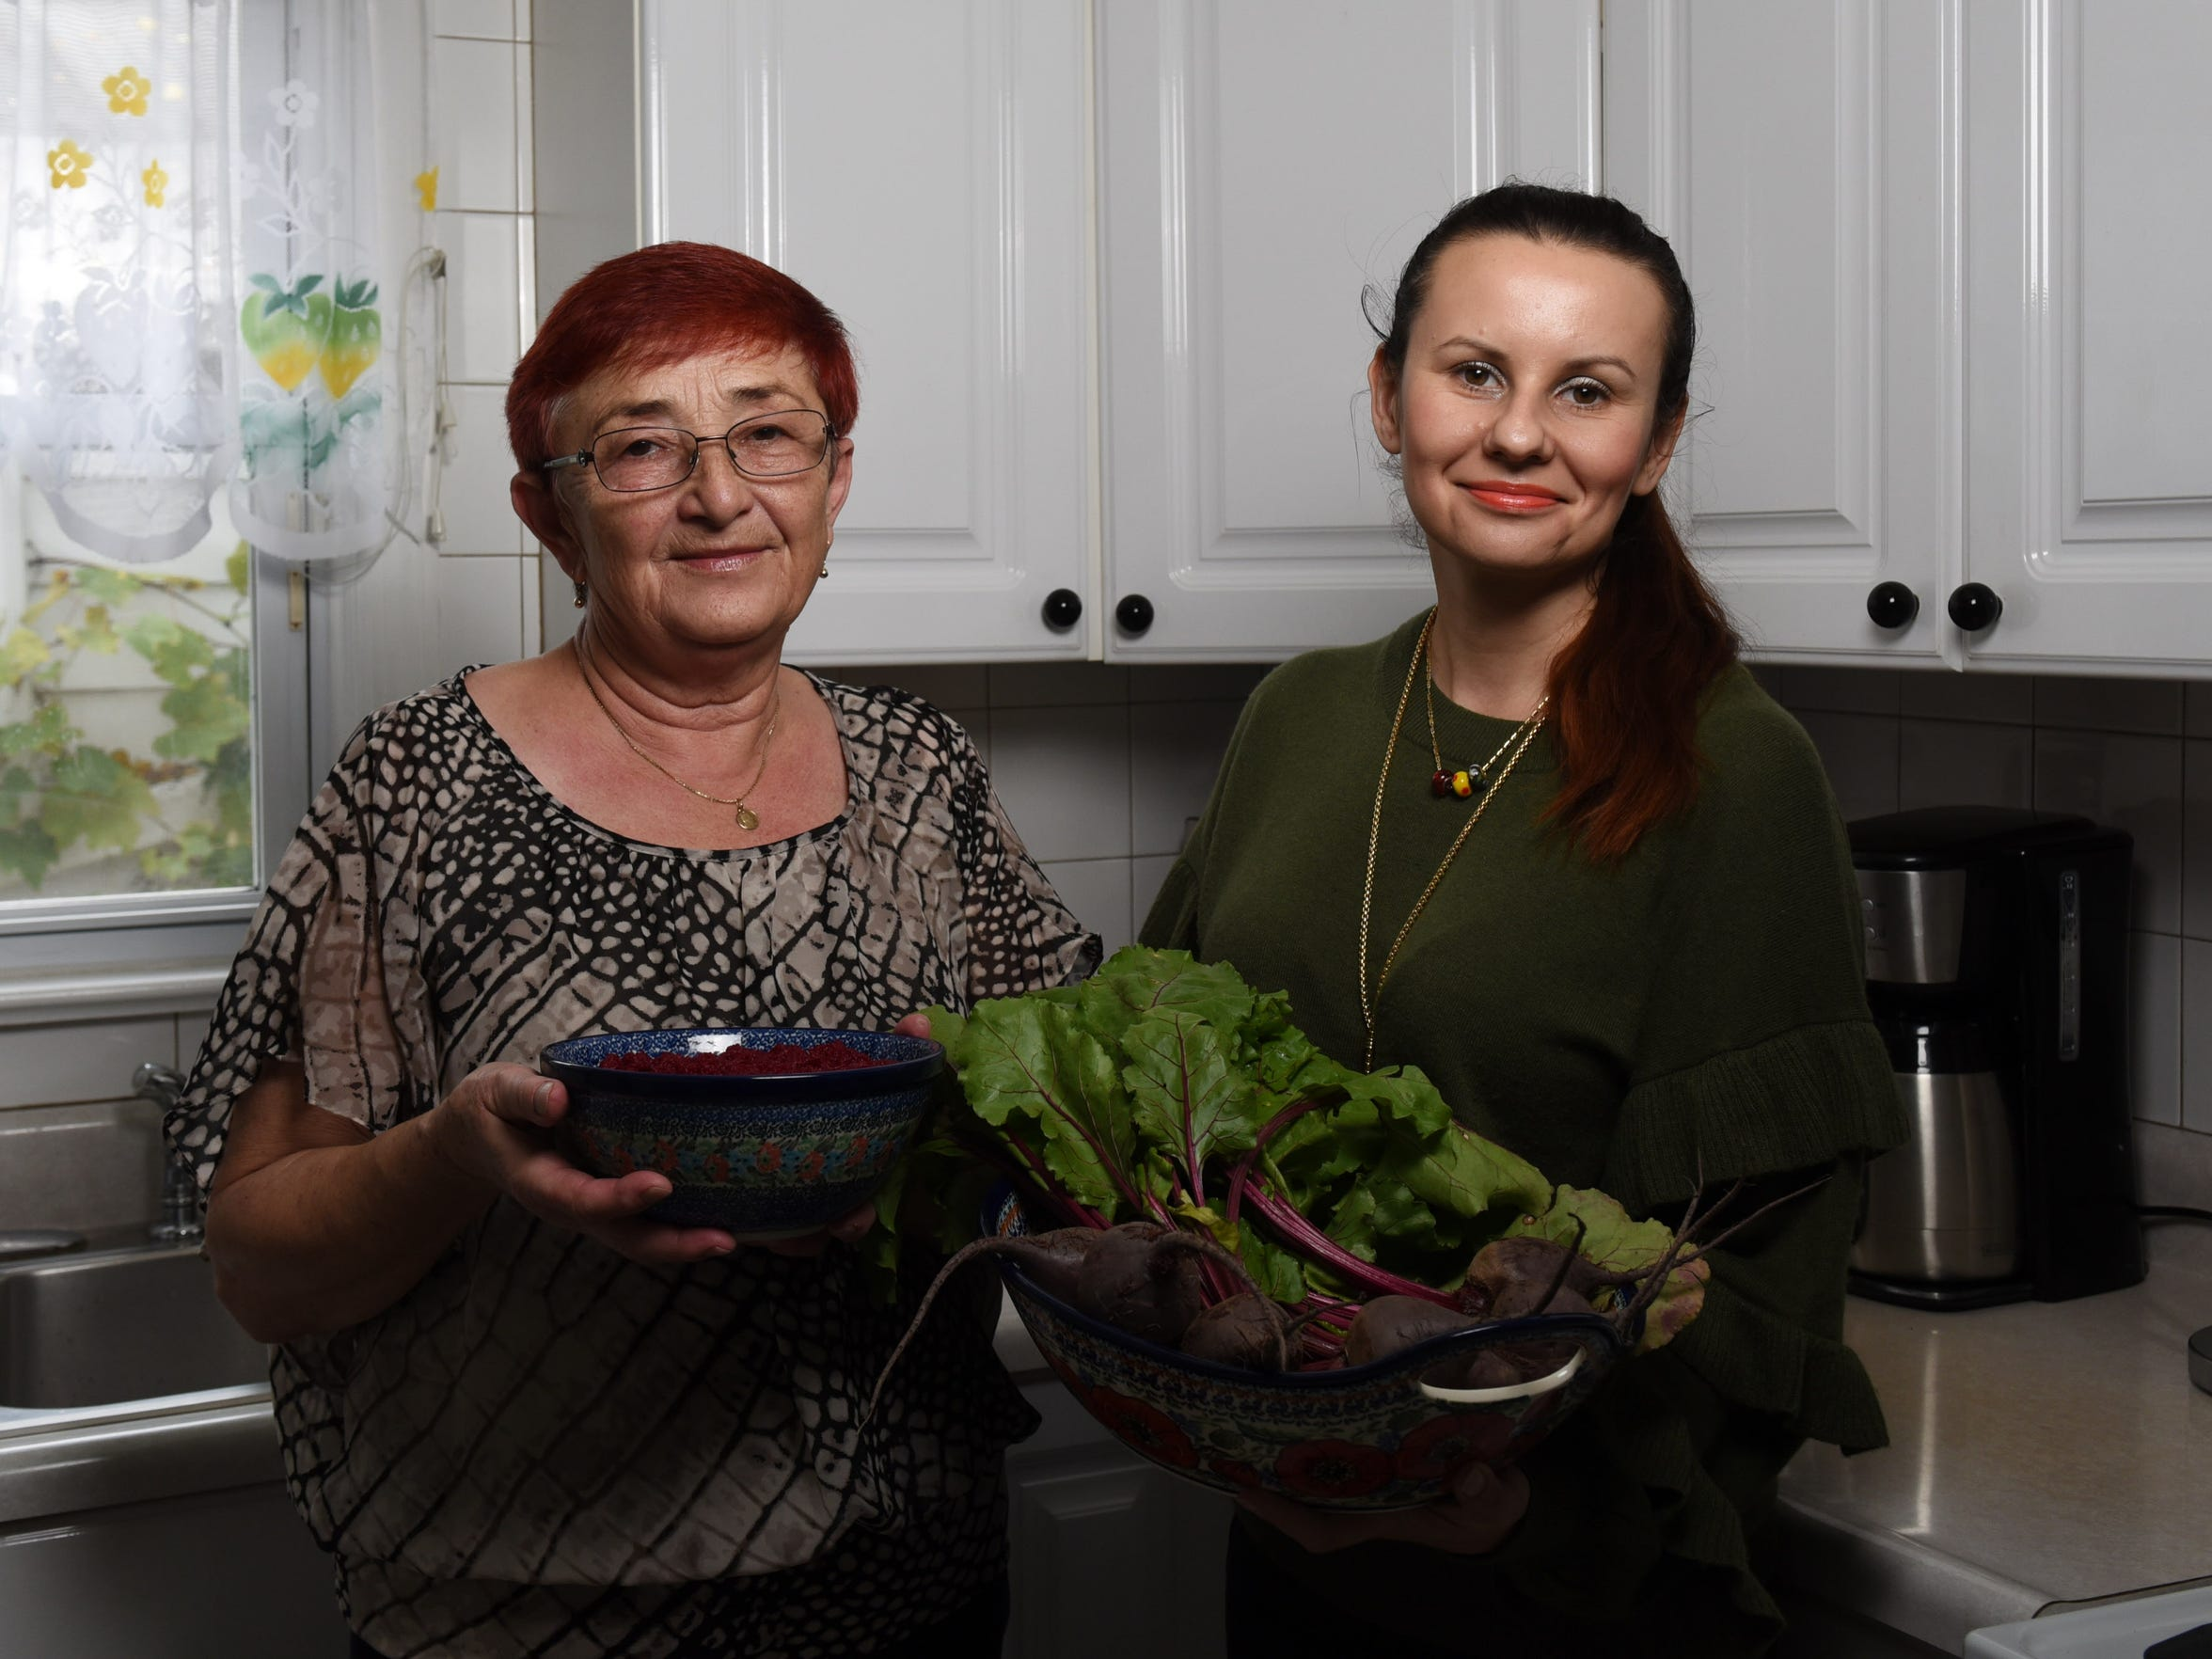 Teresa Piela, a Carlstadt resident from Poland, made Cwikla - a Polish salad or relish with cooked grated beets and grated horseradish.